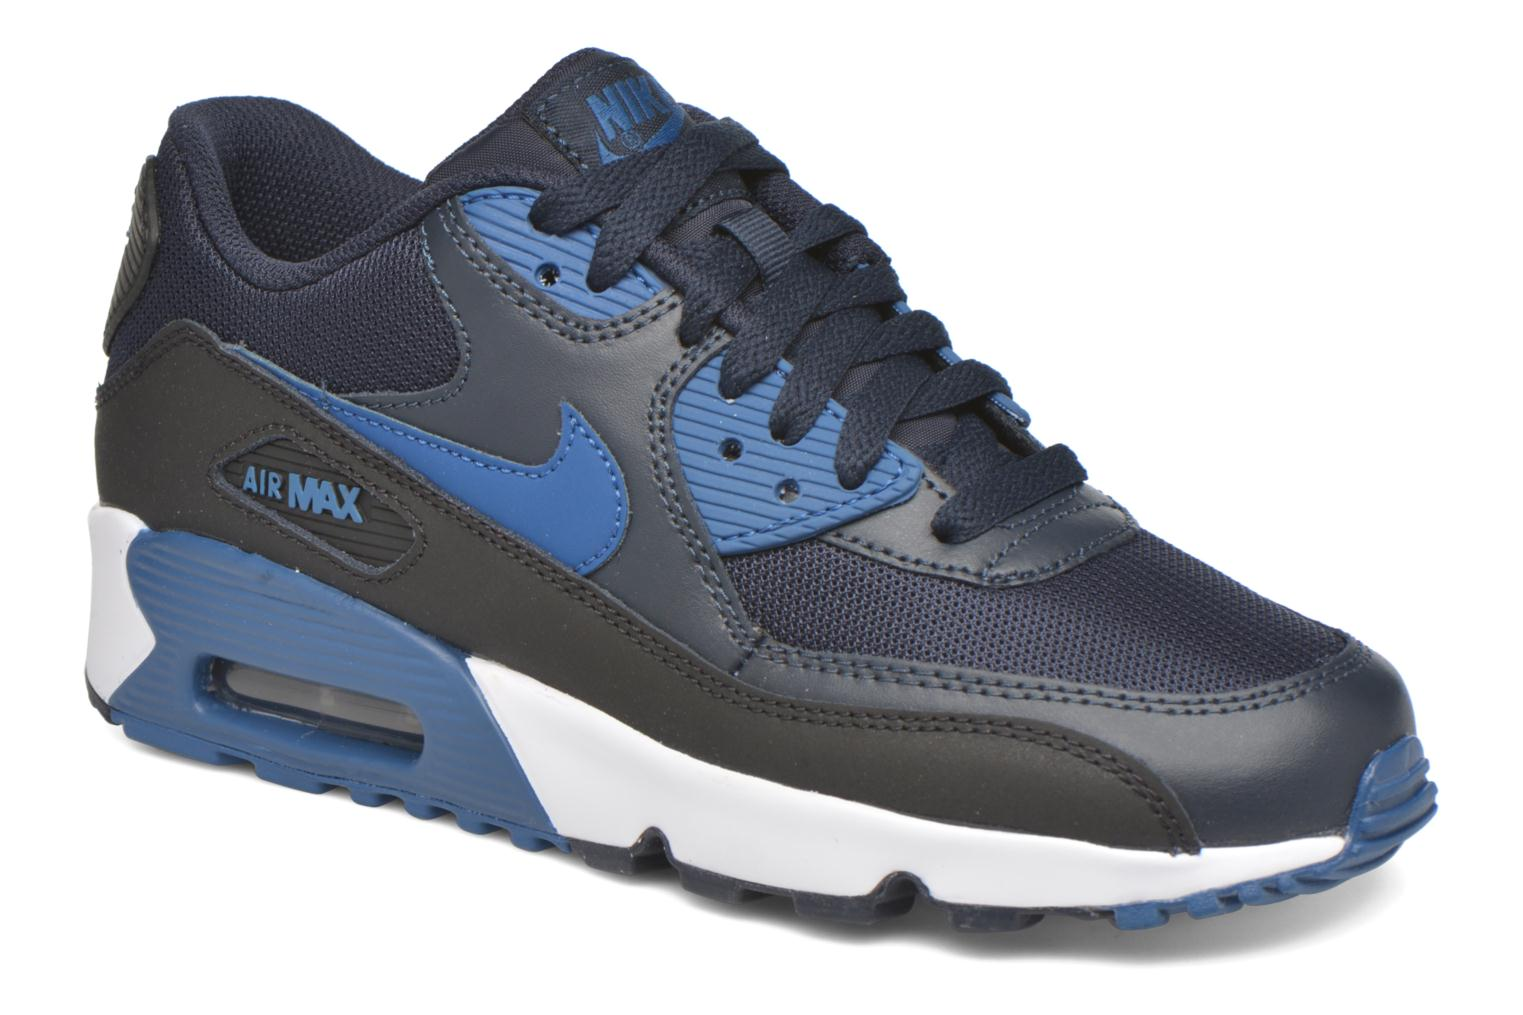 NIKE AIR MAX 90 MESH (GS) Dark Obsidian/Court Blue-Black-White